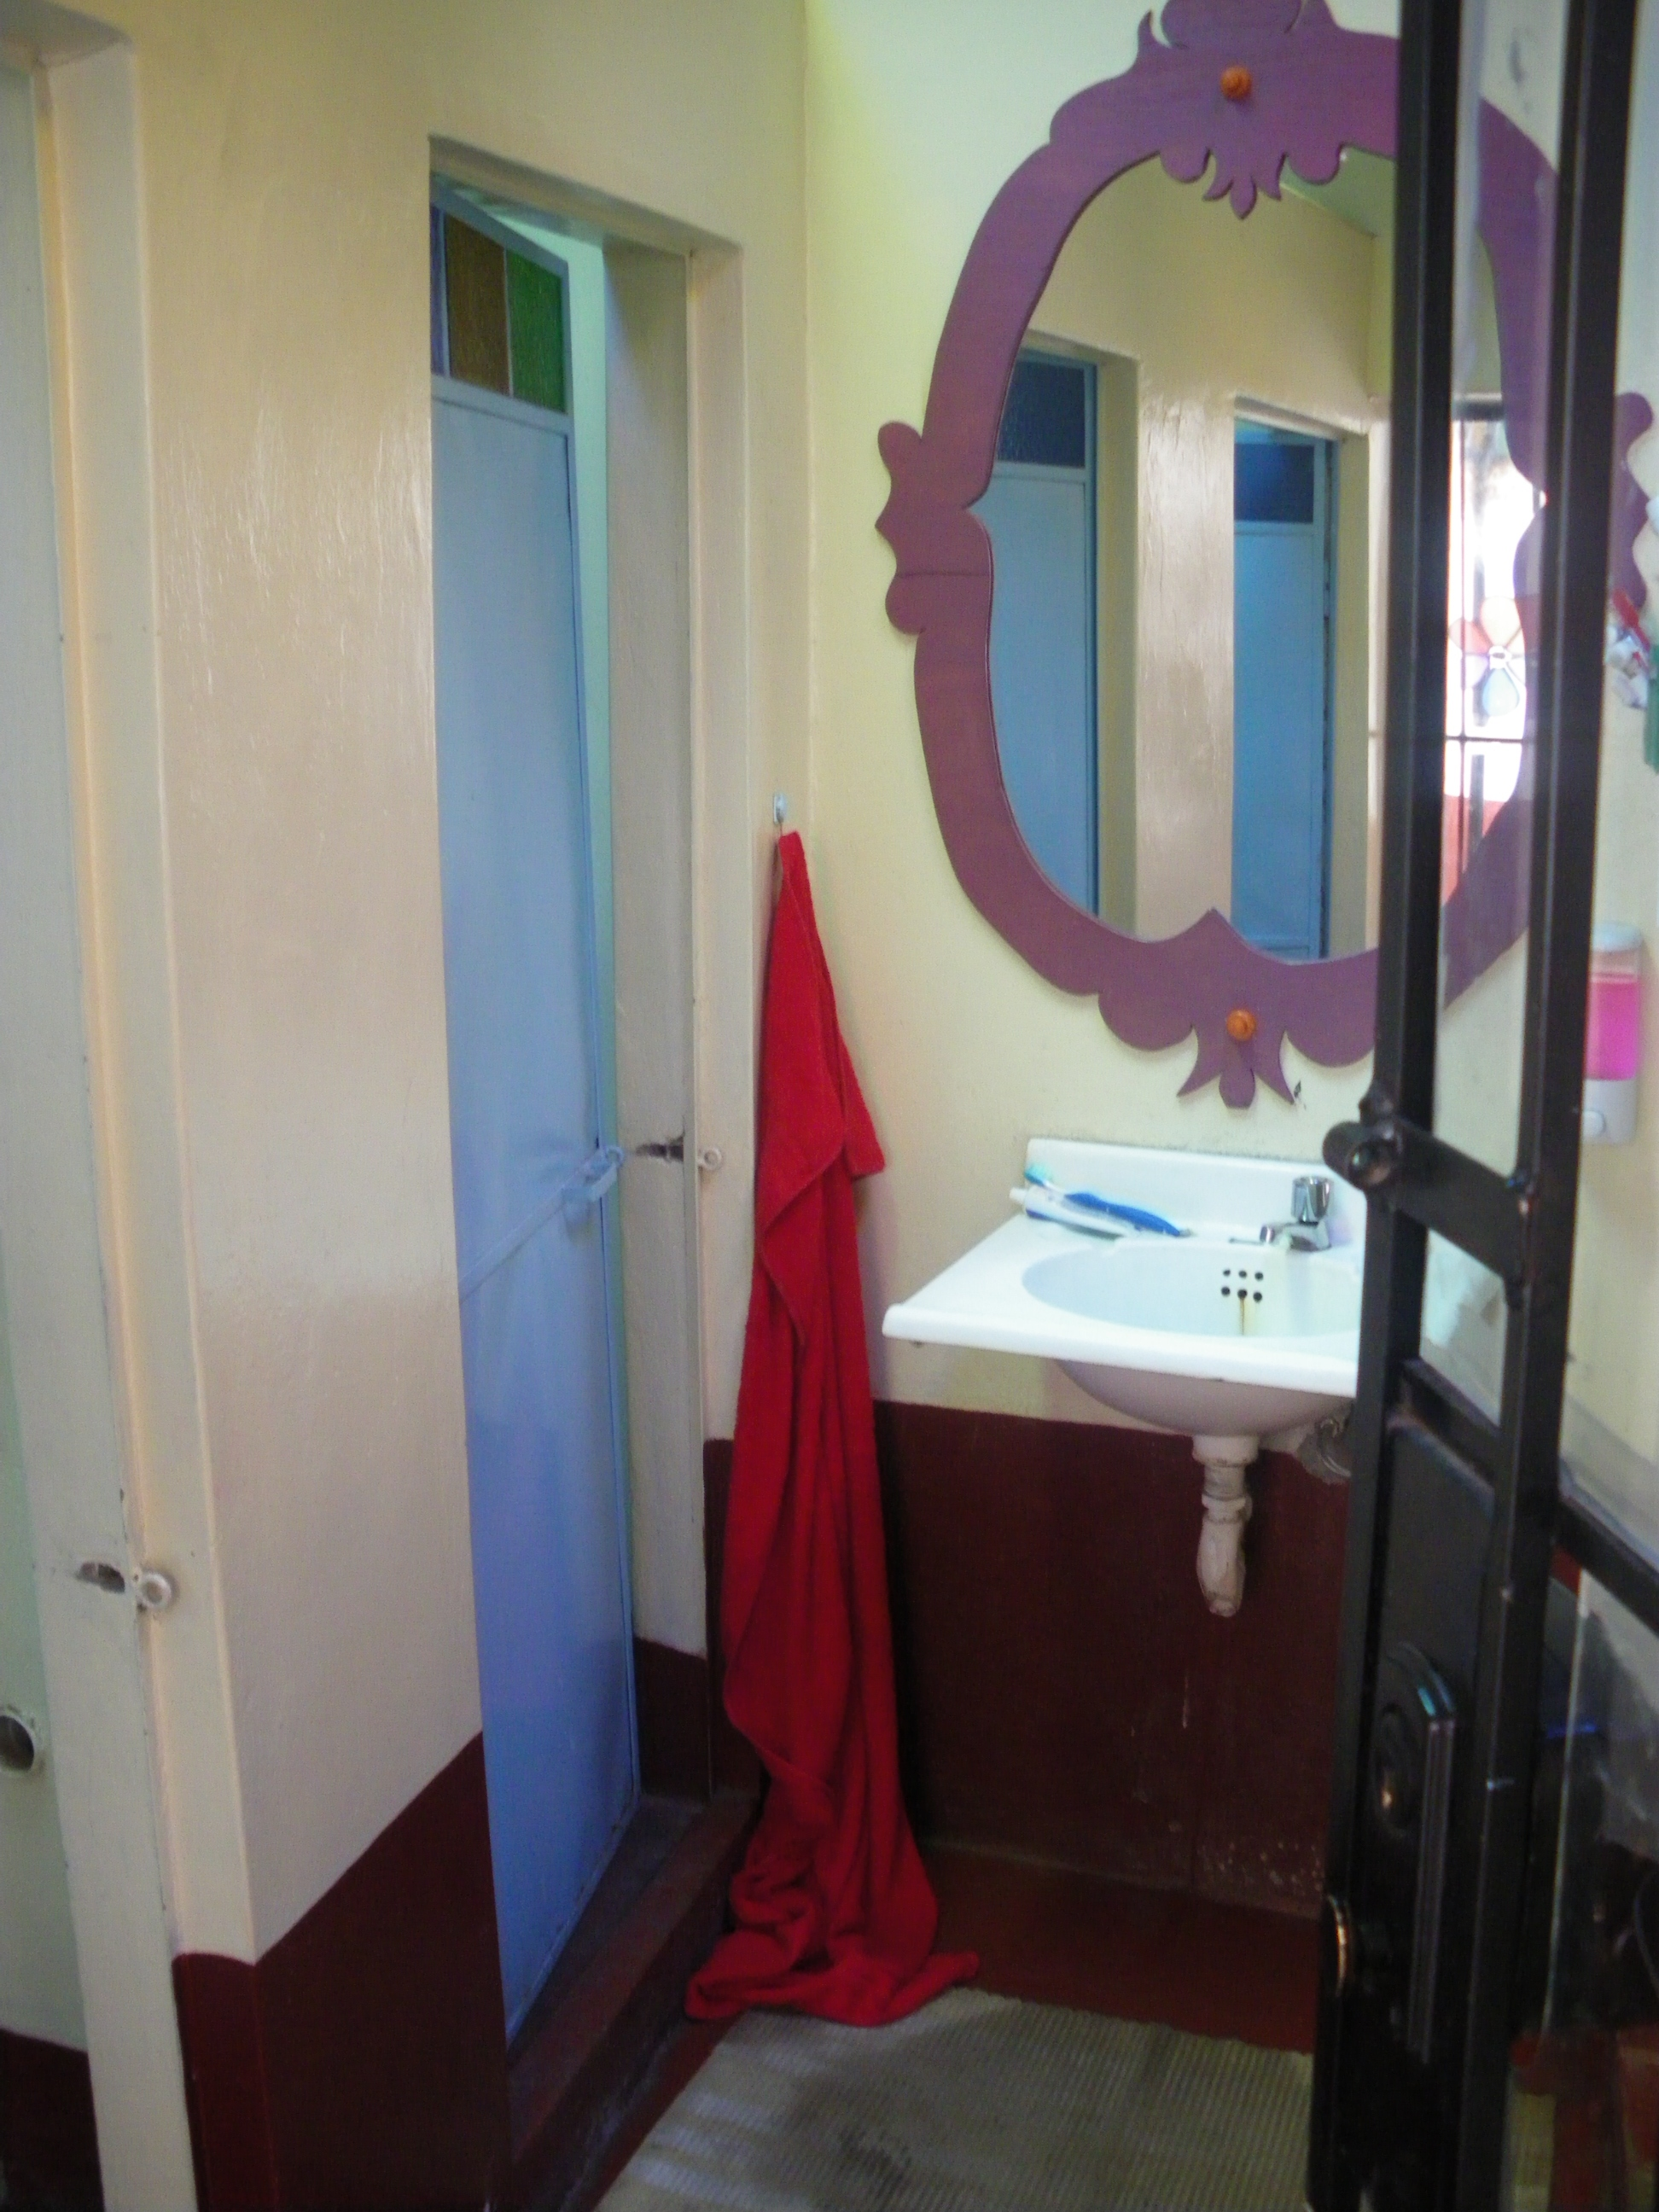 There are 2.5 bathrooms in the hostal.  A total of 4 toilets and 4 showers.  This is the one closest to my room.